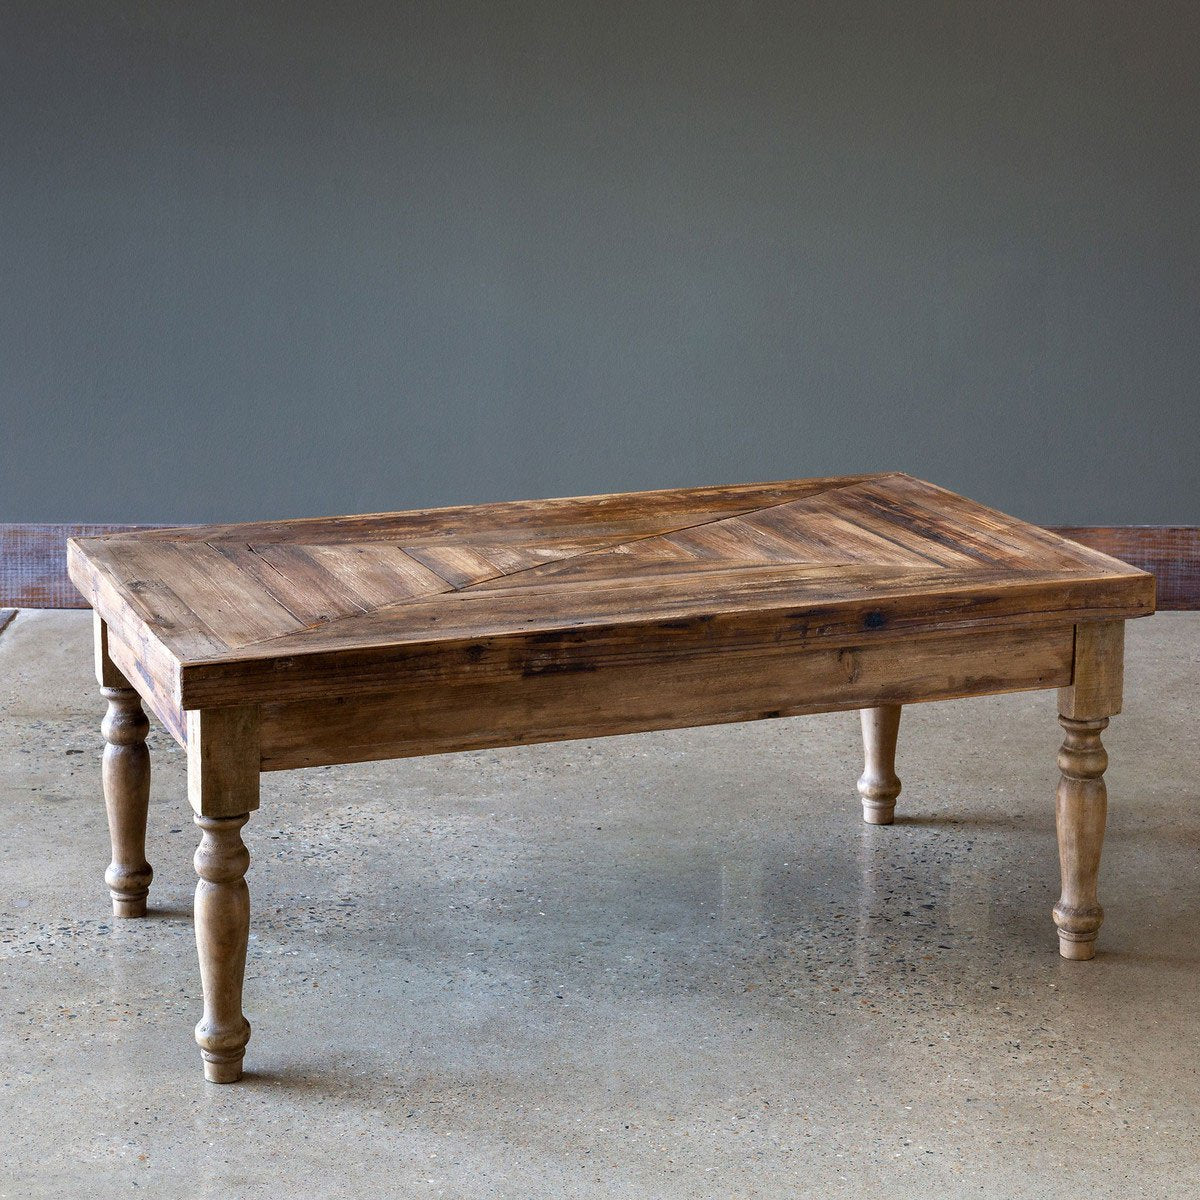 Reclaimed Wood Coffee Table Iron Accents